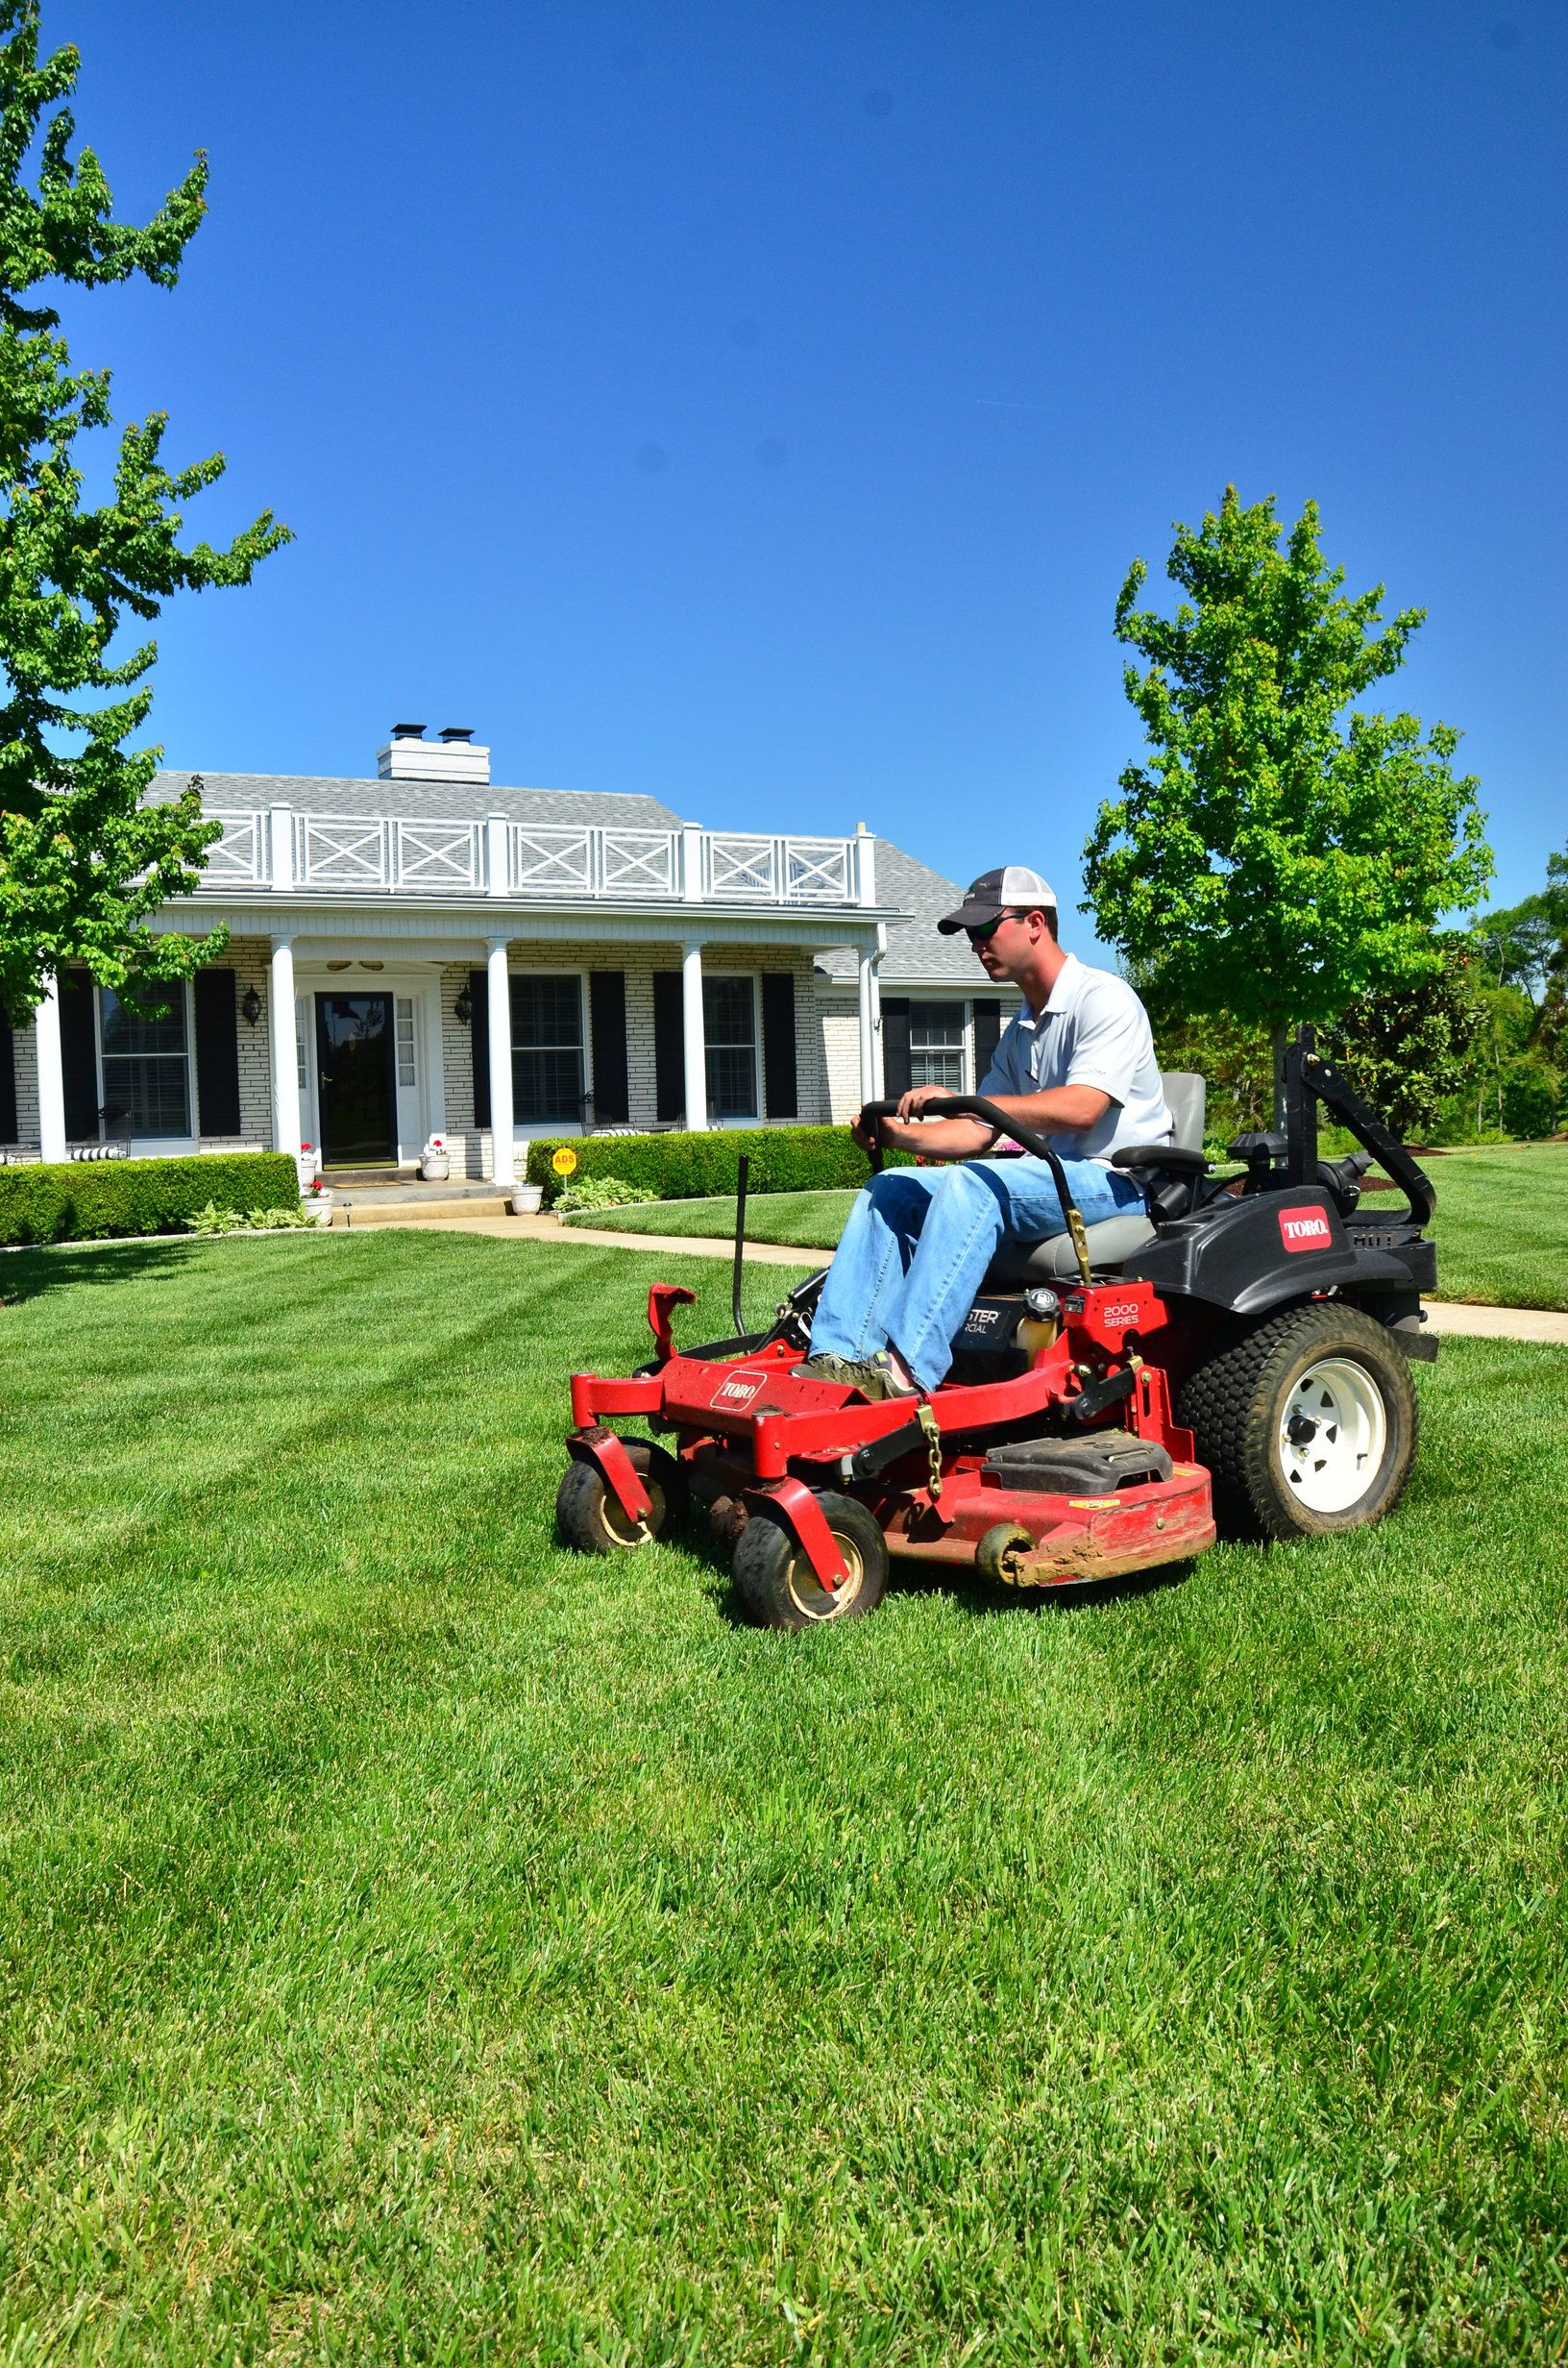 What is the best way to find a lawn pro? Great question, I